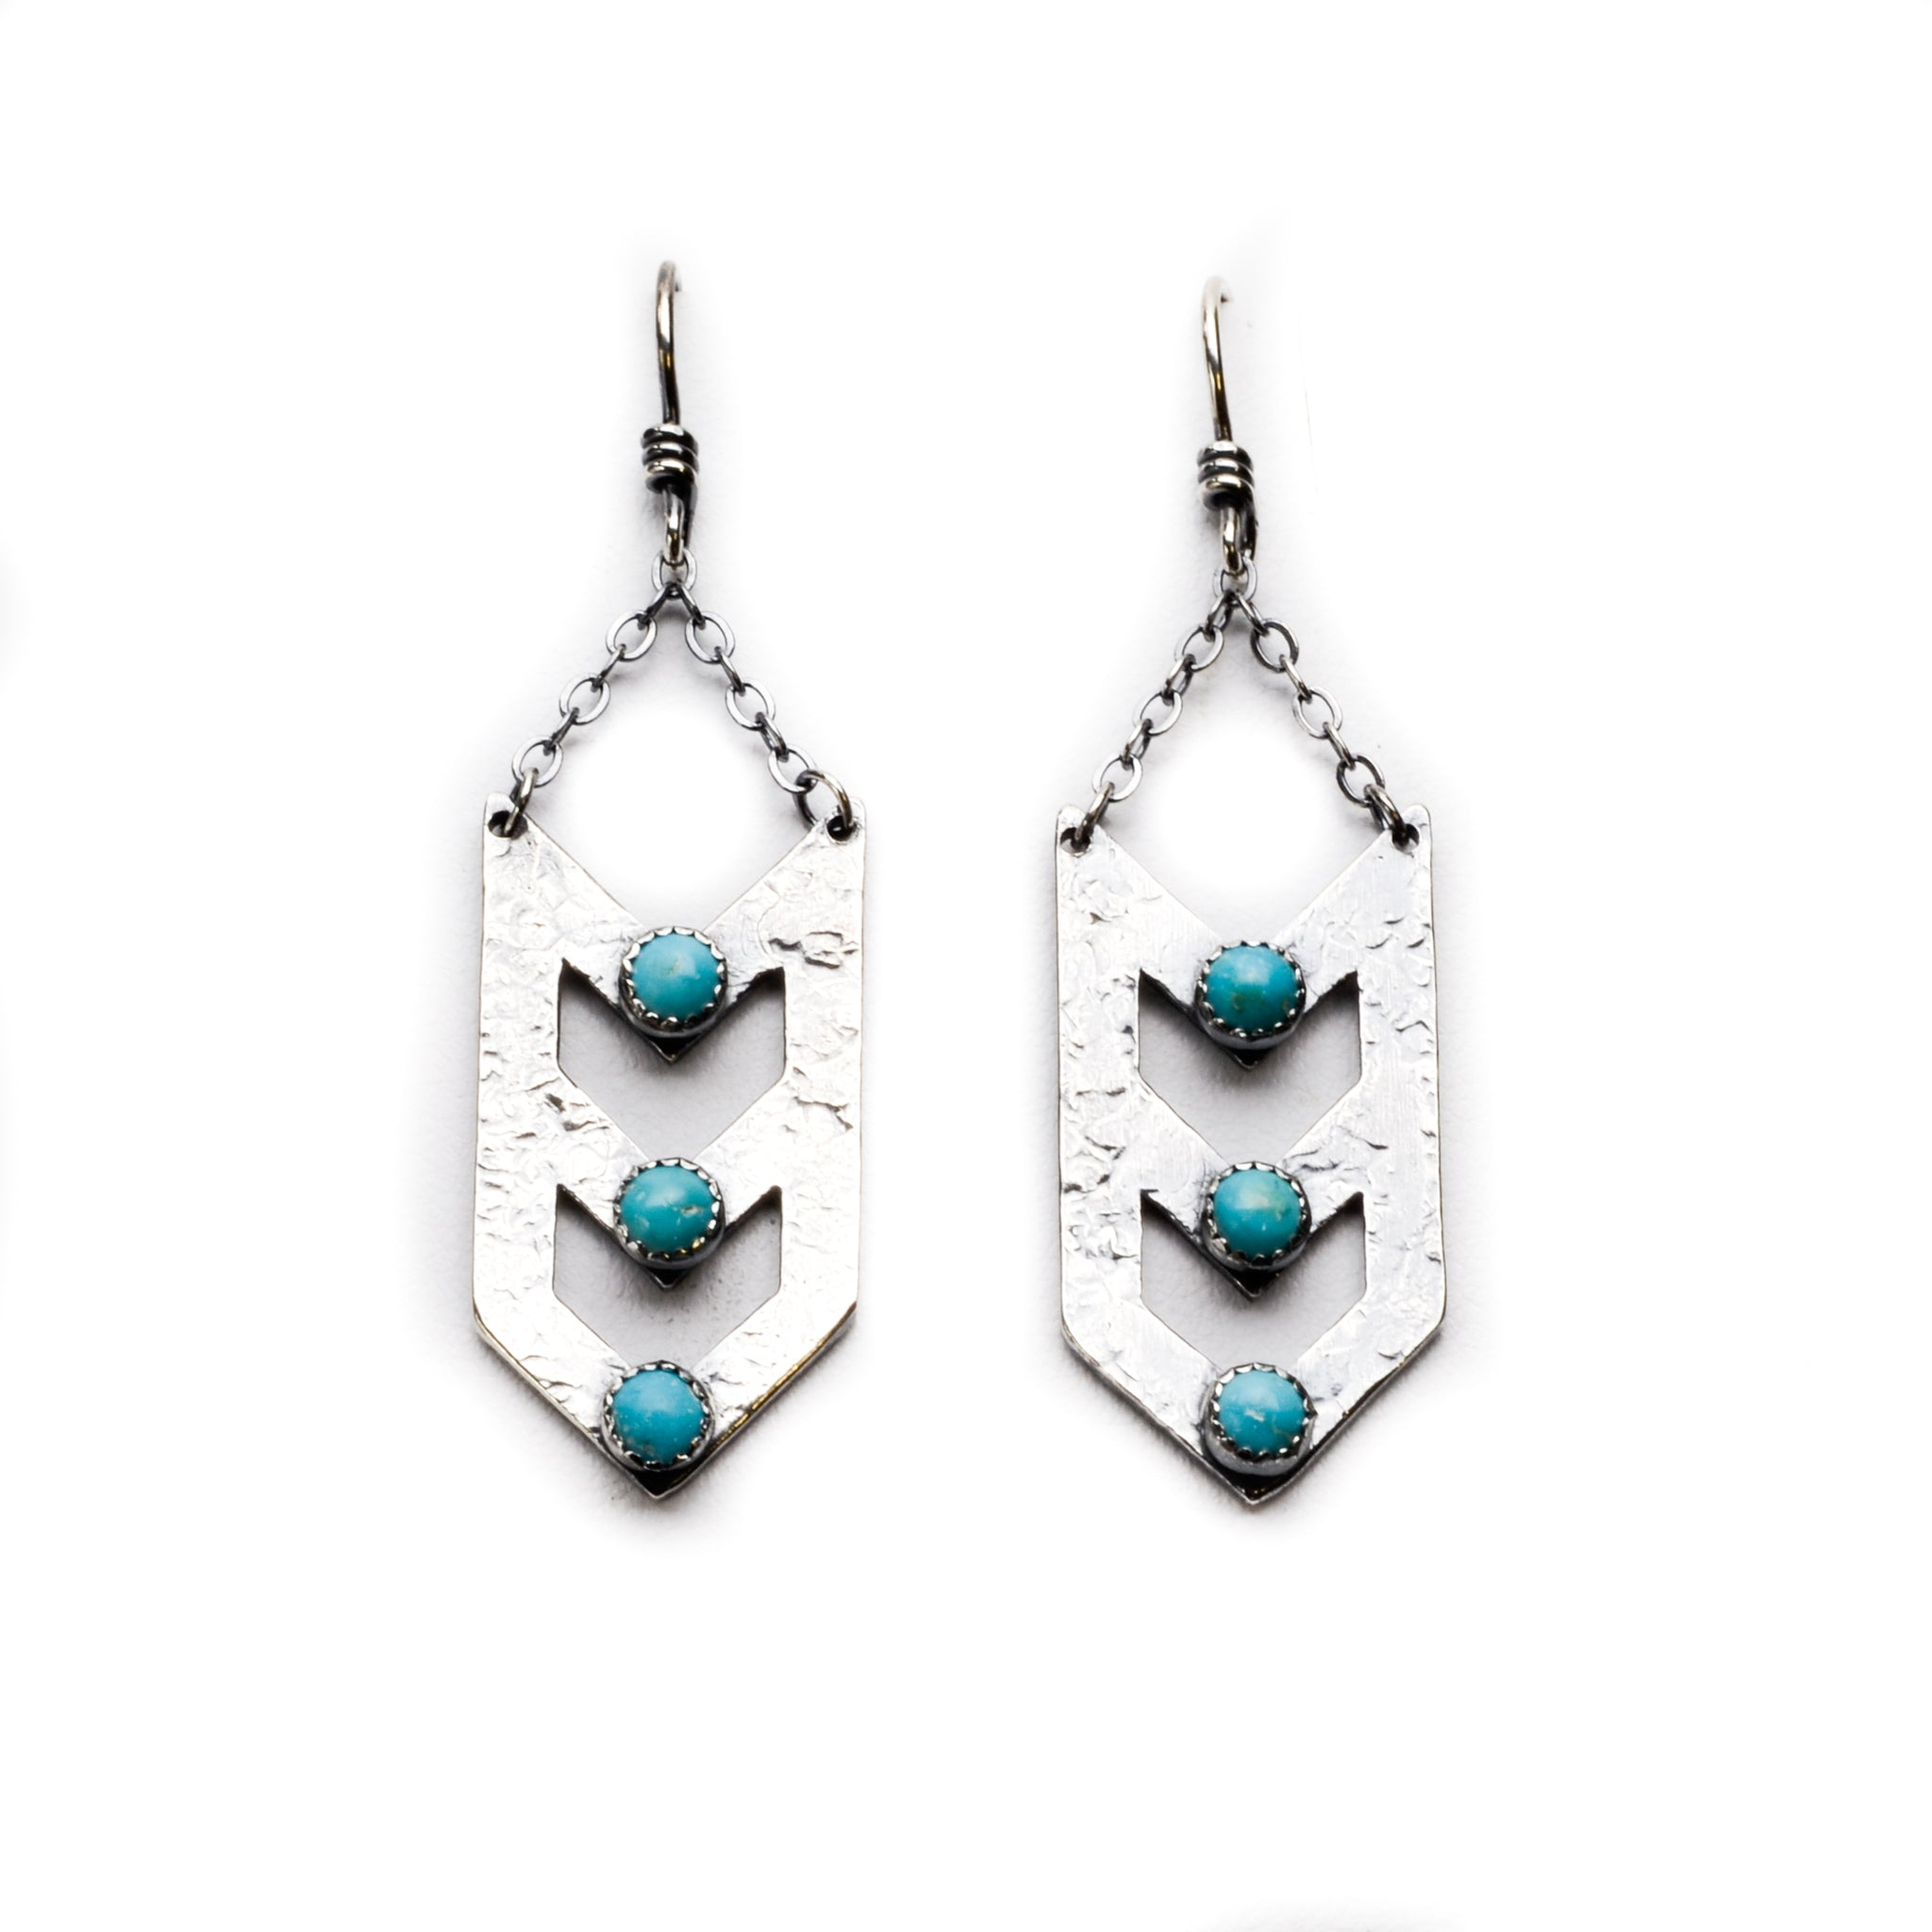 Double Arrow Earrings - Meltdown Studio Jewelry